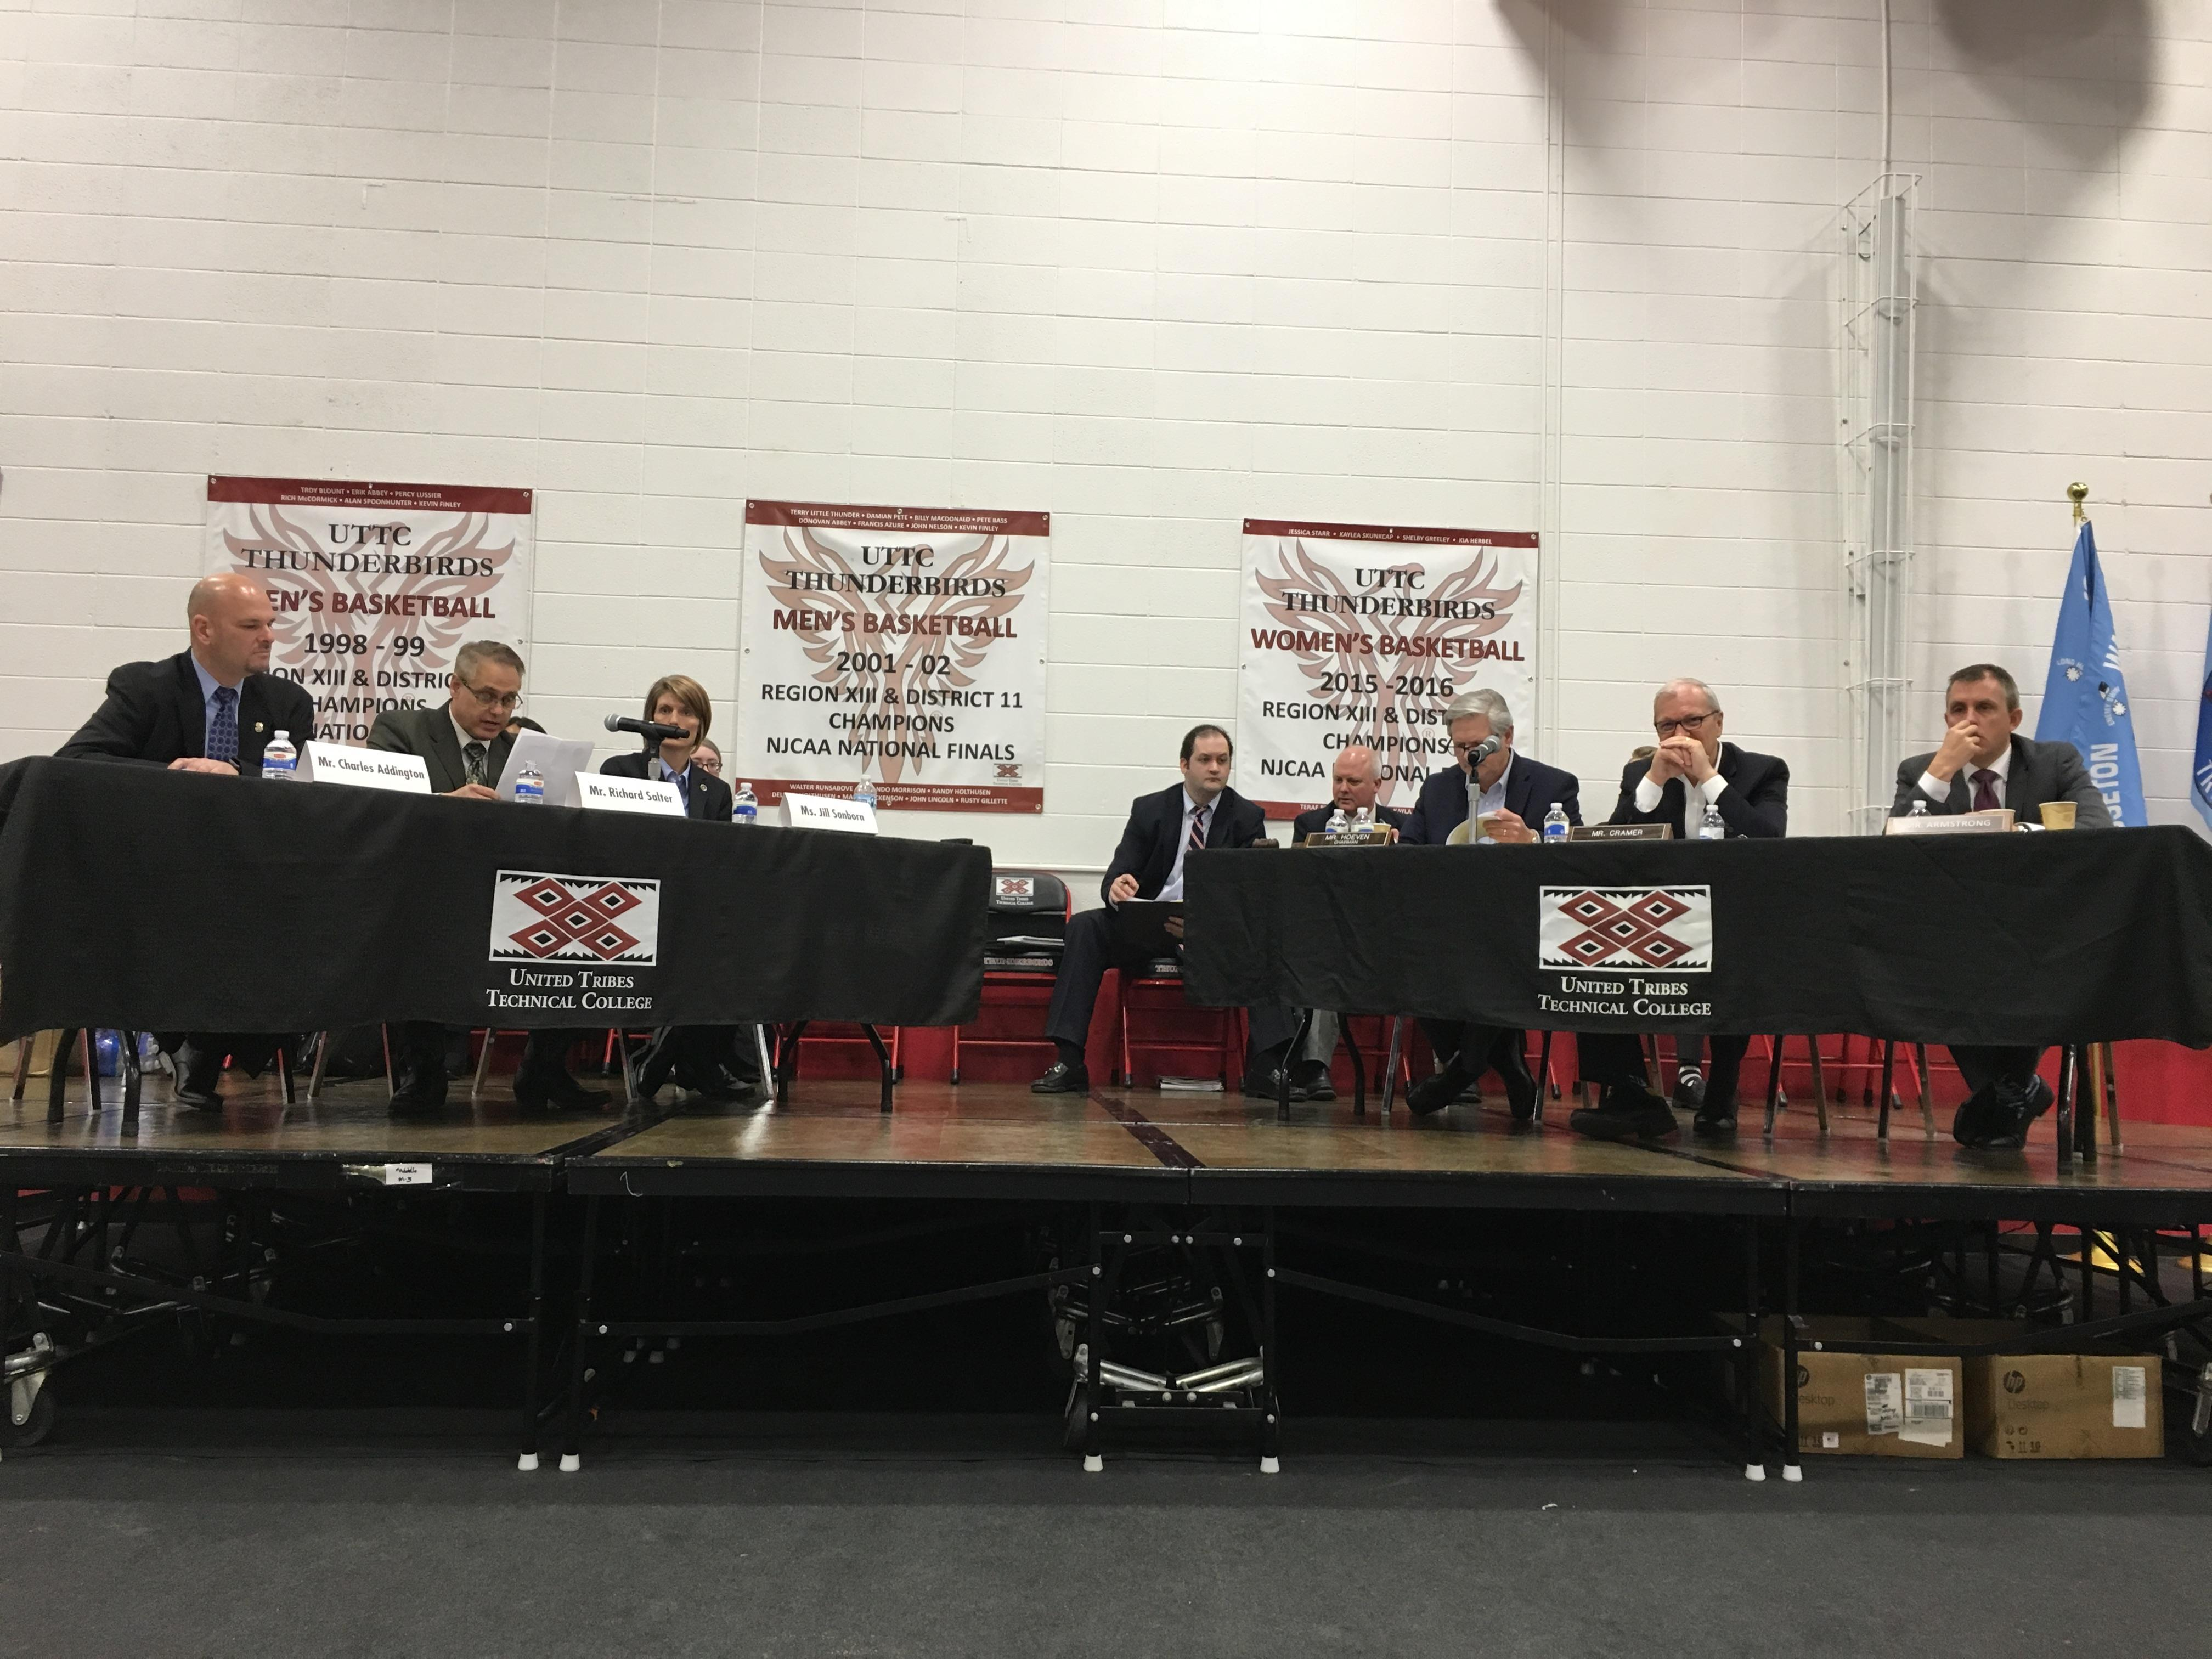 Senate Committee on Indian Affairs Oversight Hearing in Bismarck, N.D.